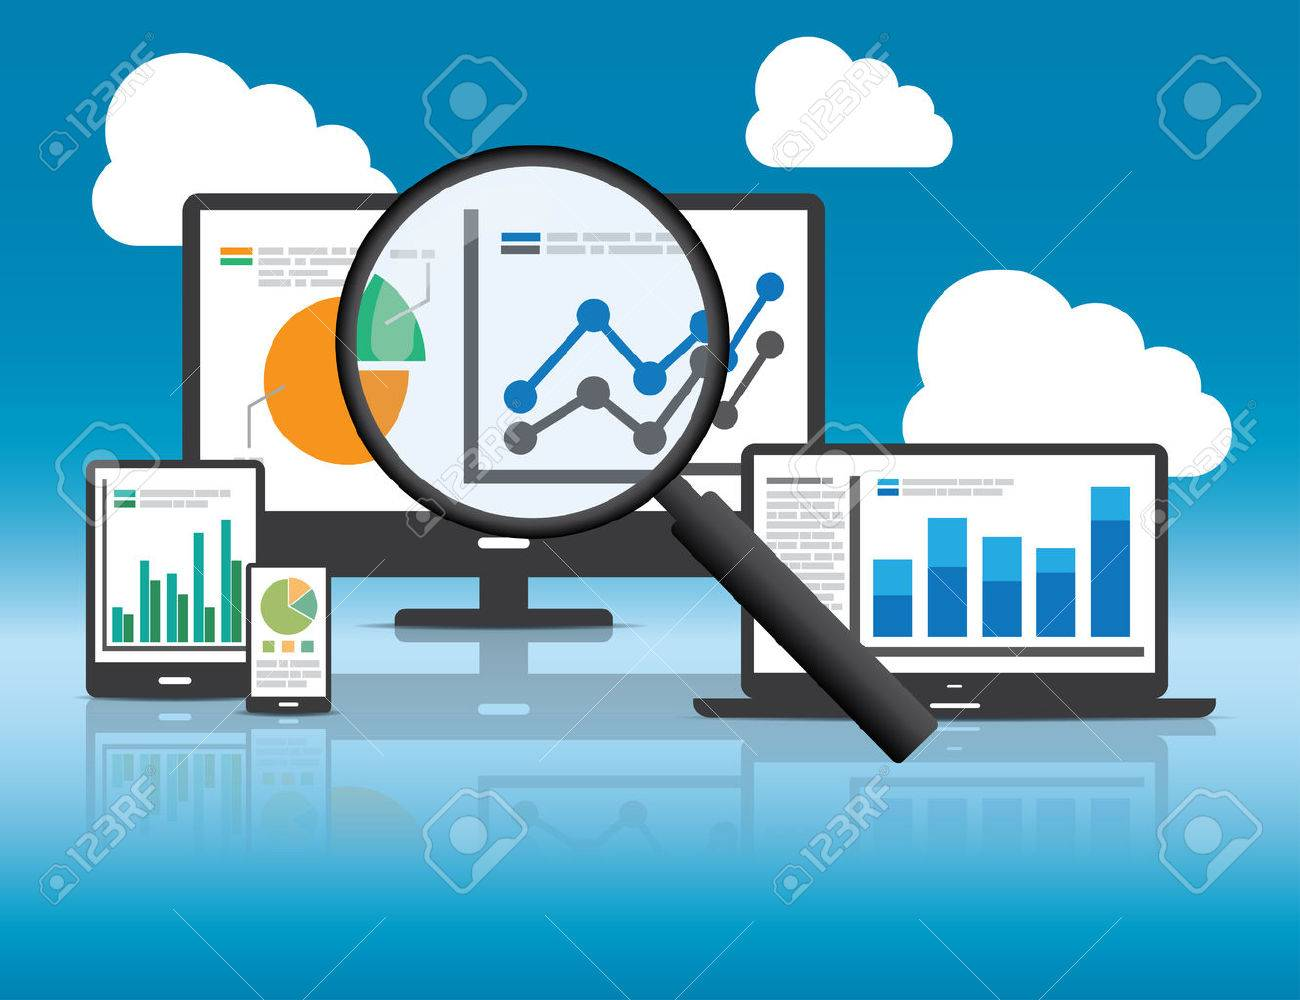 Website analytics and SEO data analysis concept. EPS10 file and included high resolution jpg - 34095475